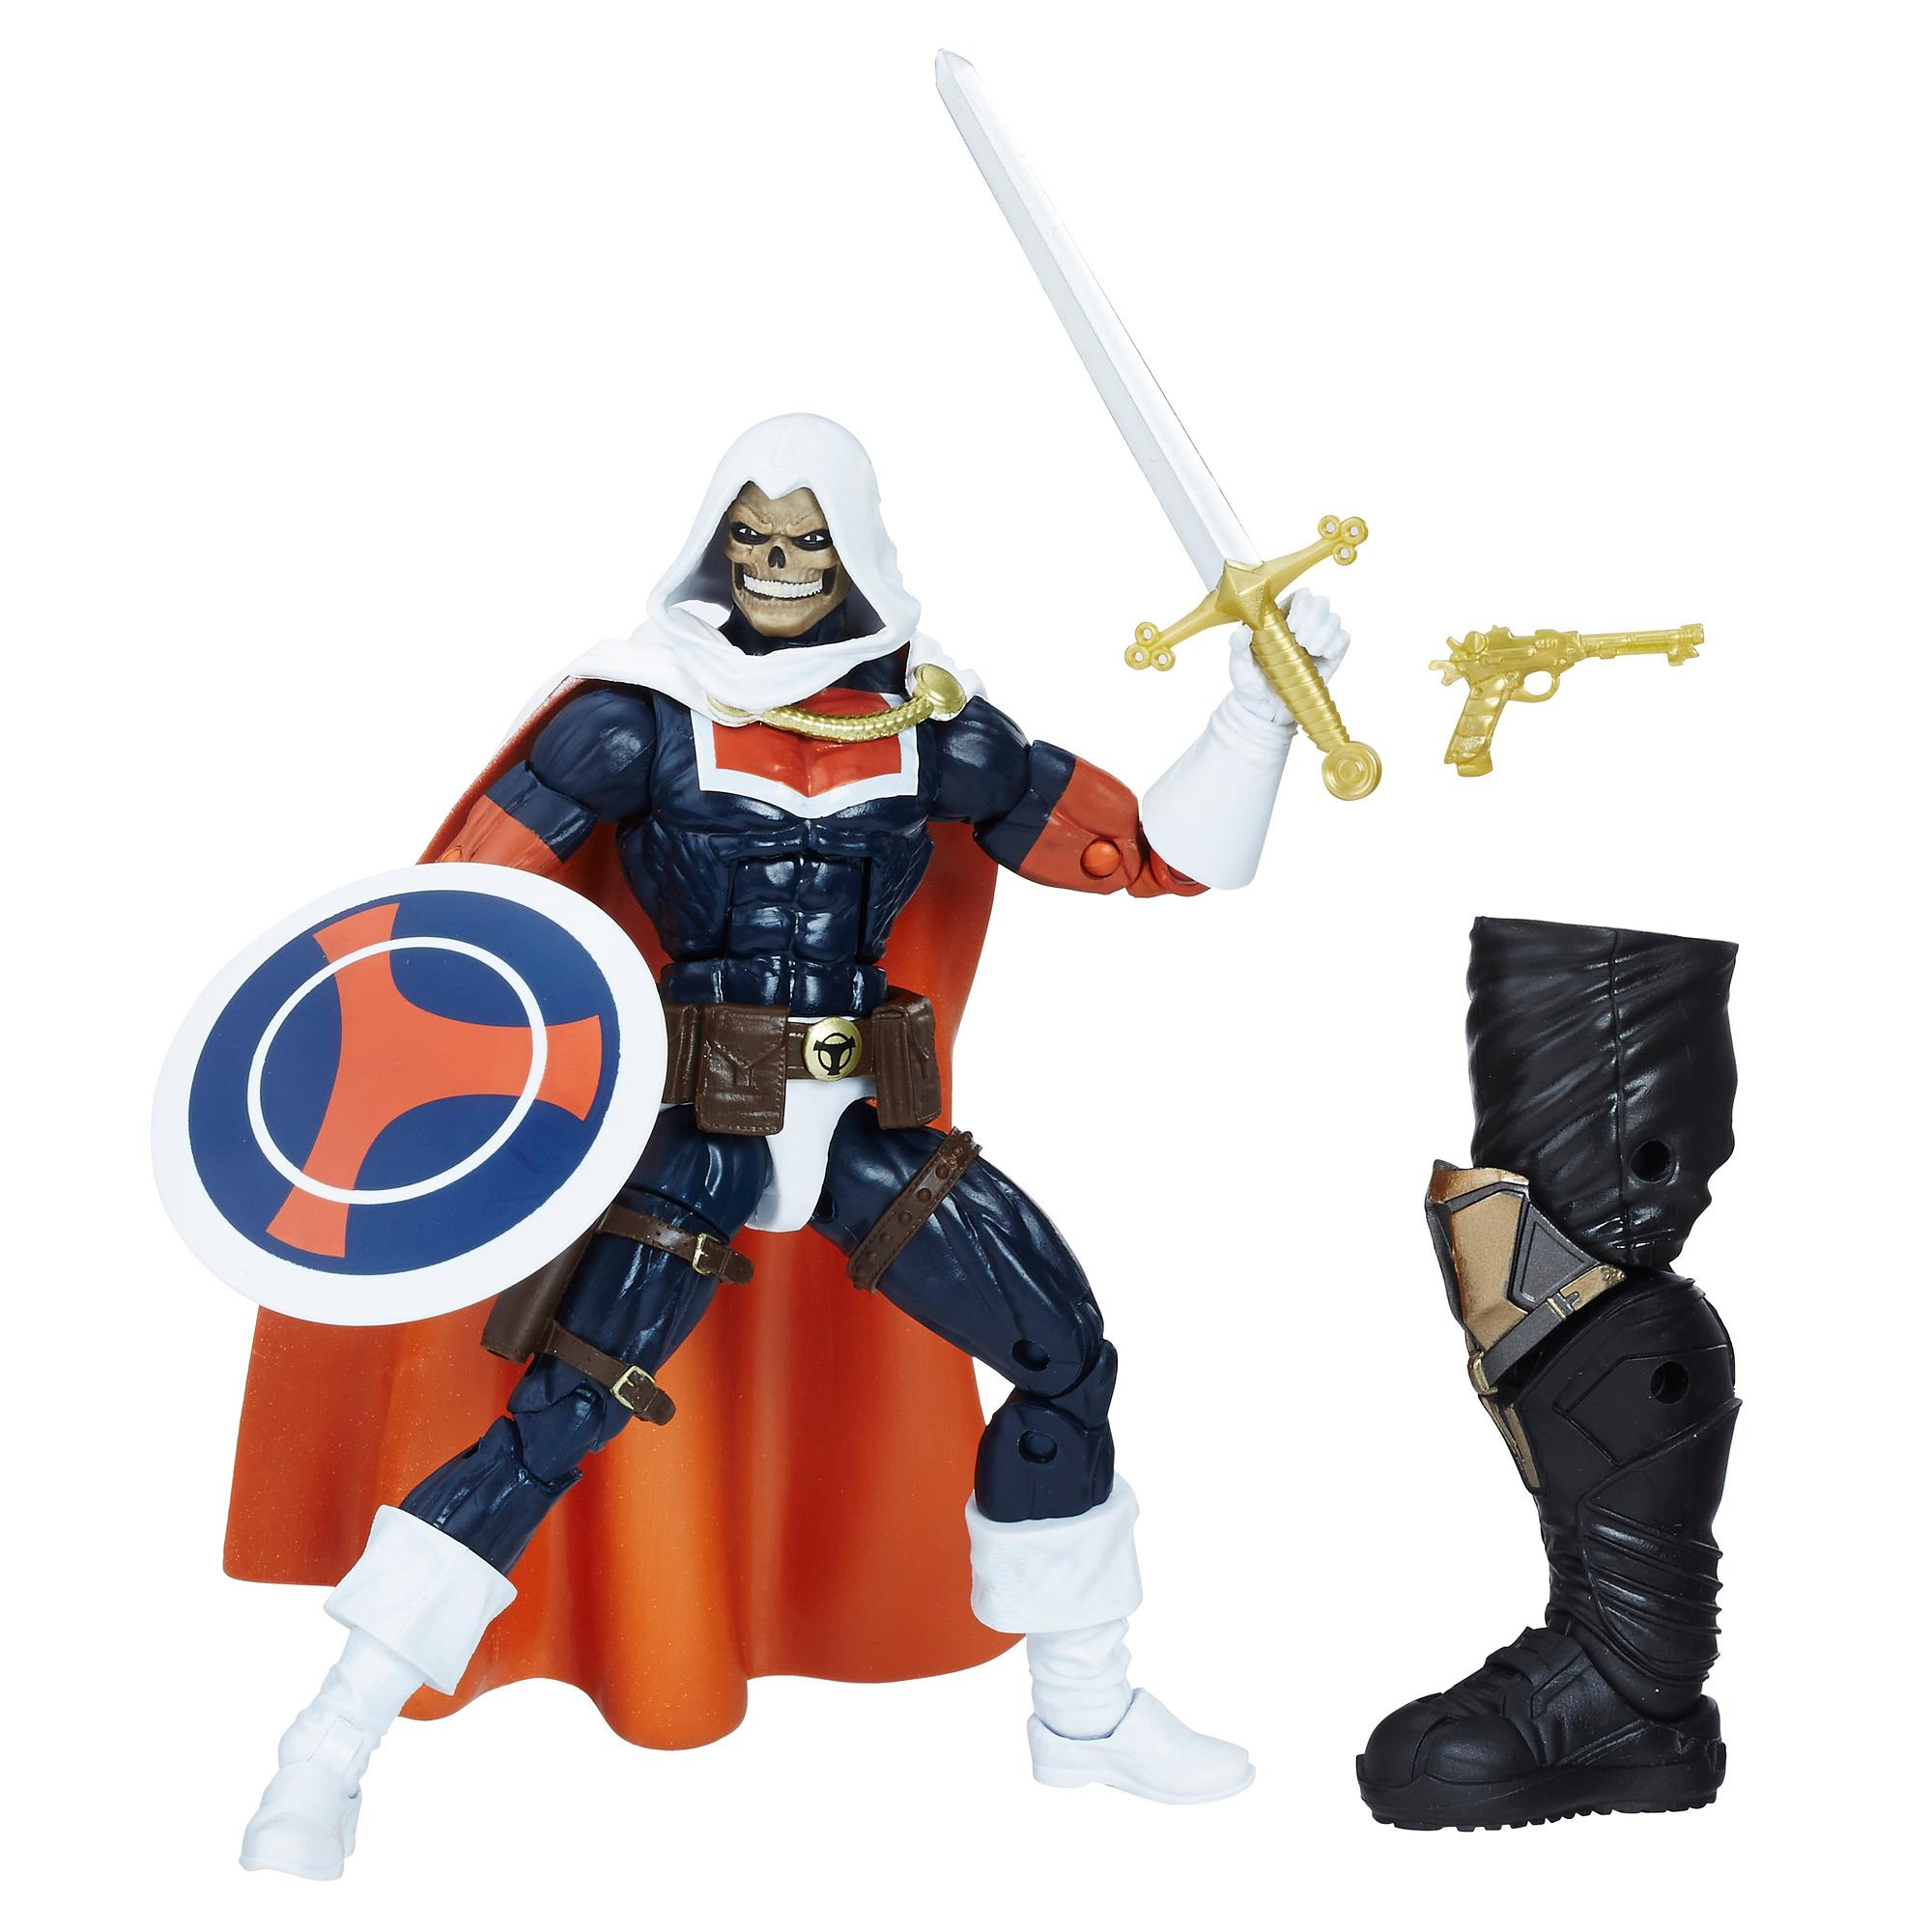 Marvel Legends - Taskmaster (Build-A-Figure Thanos Action Figure Collezione, 15 cm)